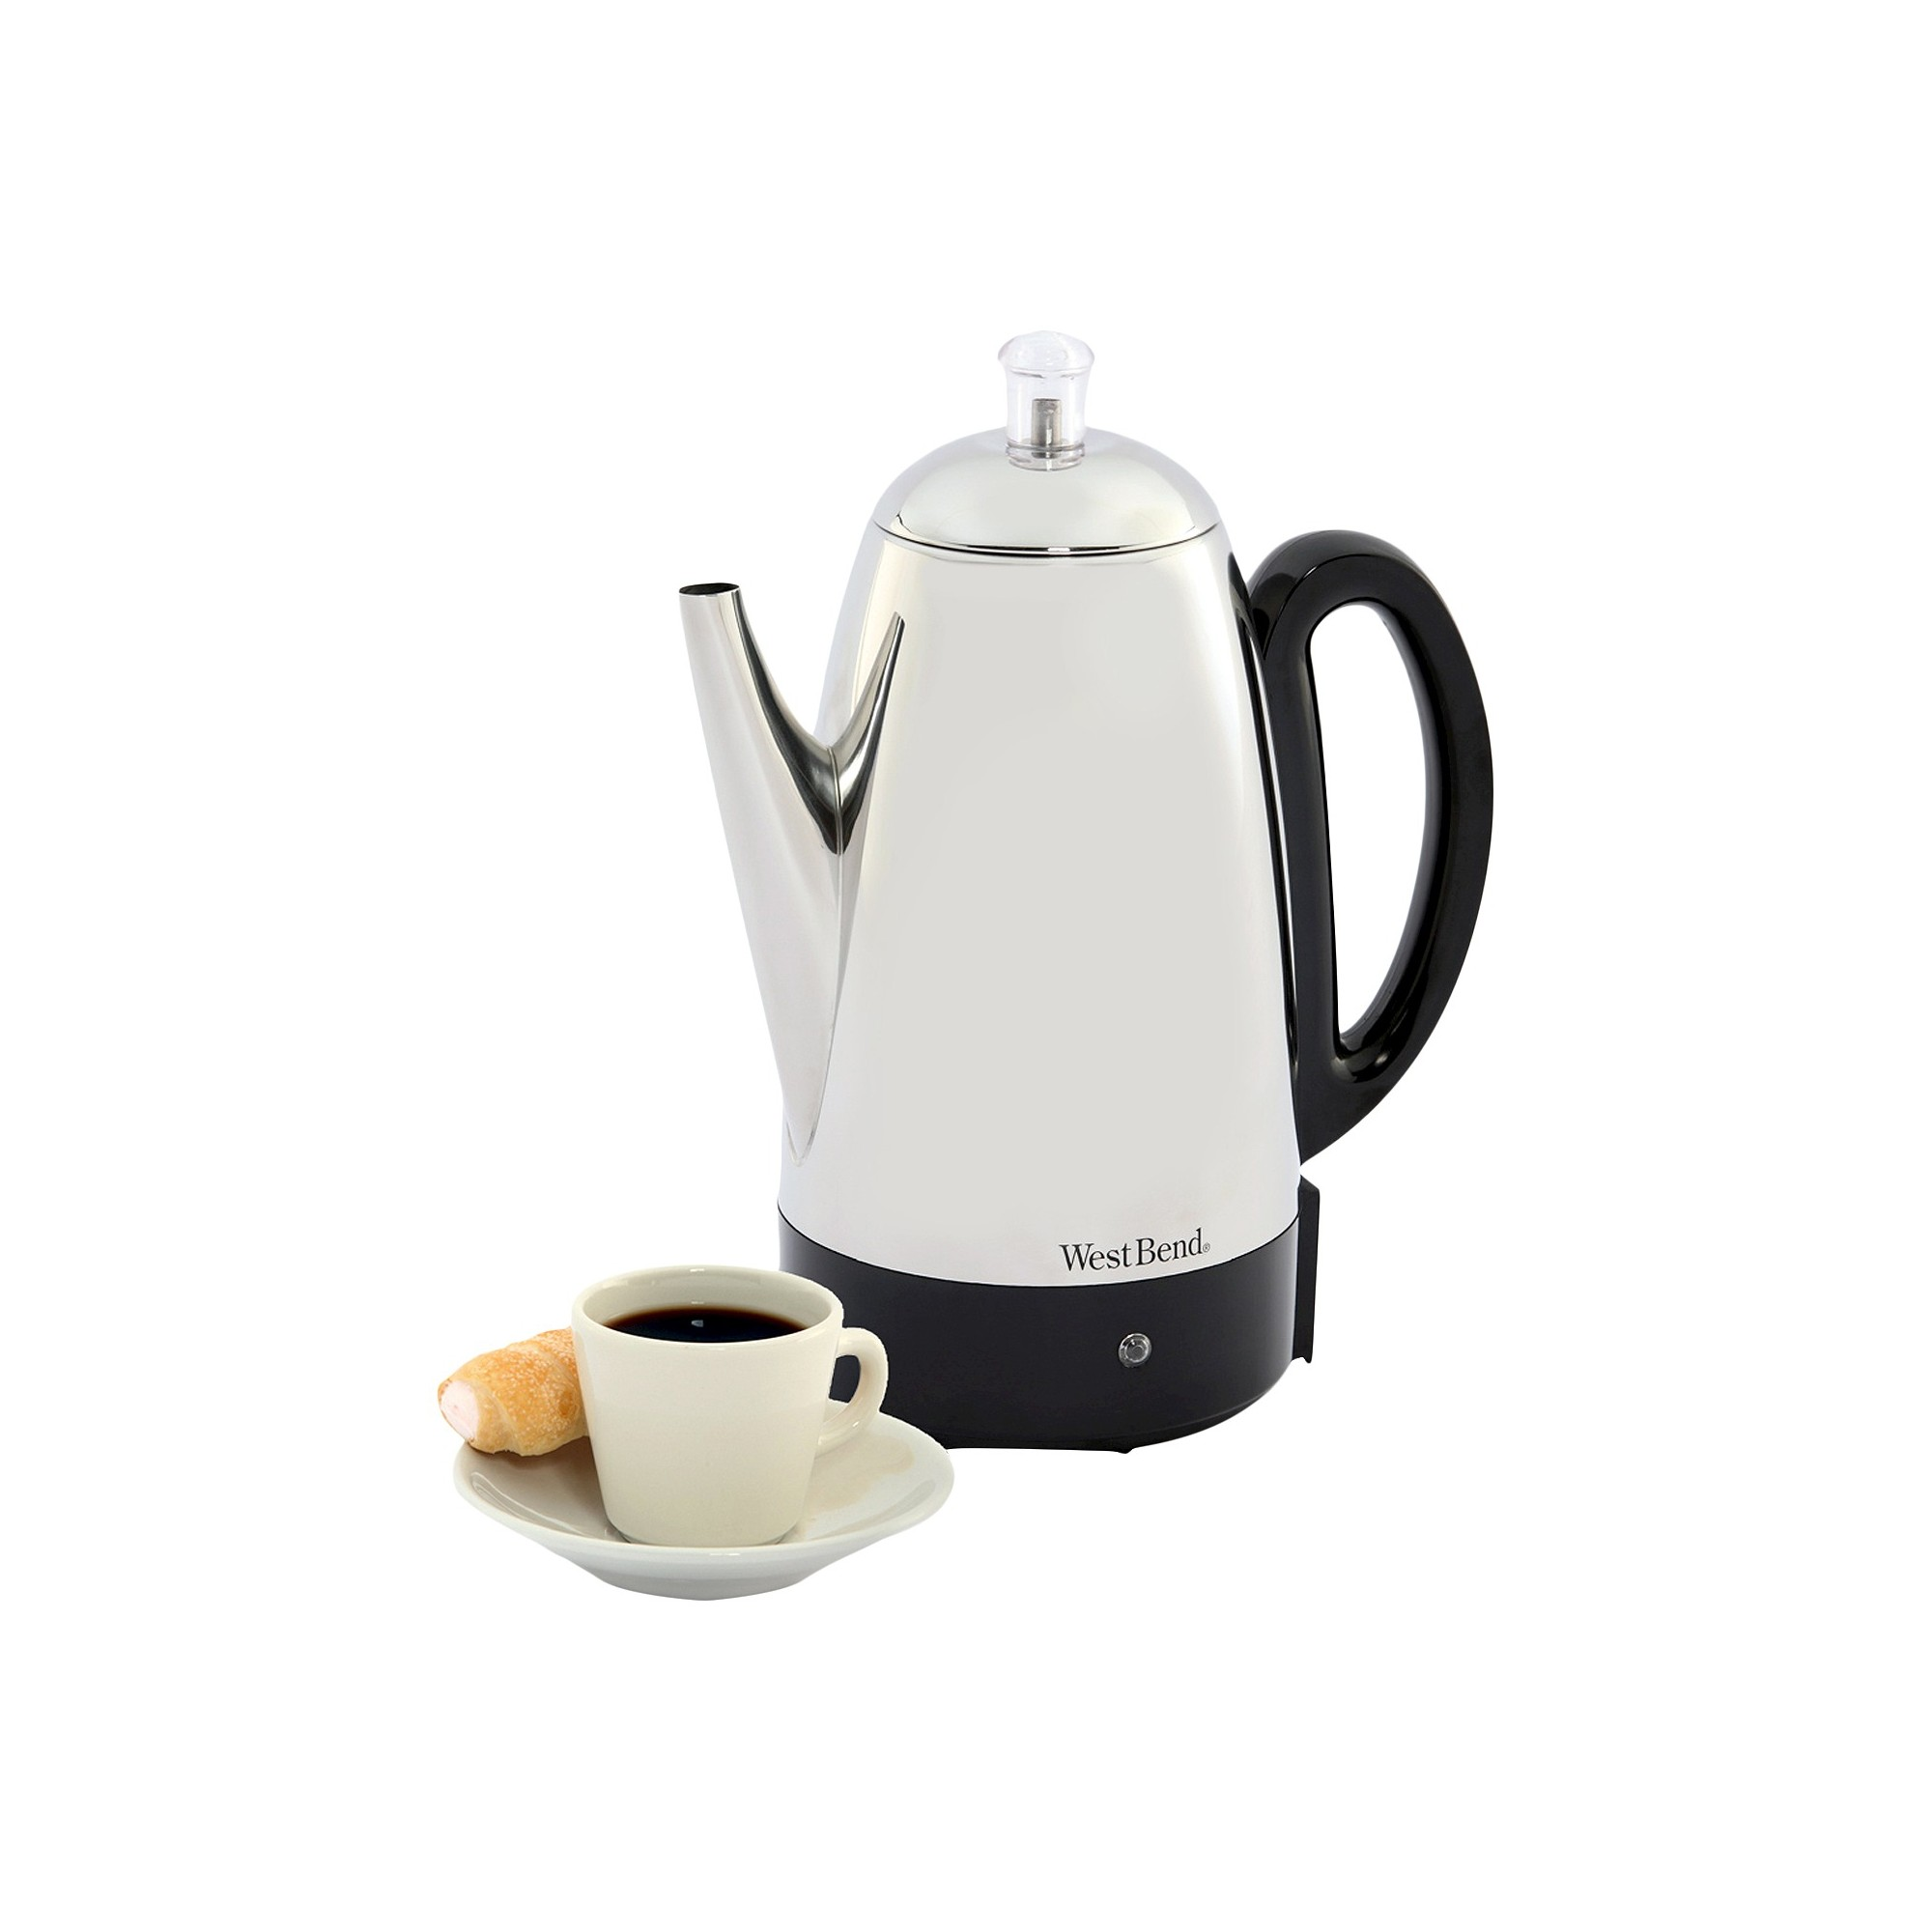 West Bend 12 Cup Coffee Percolator, Silver Black West